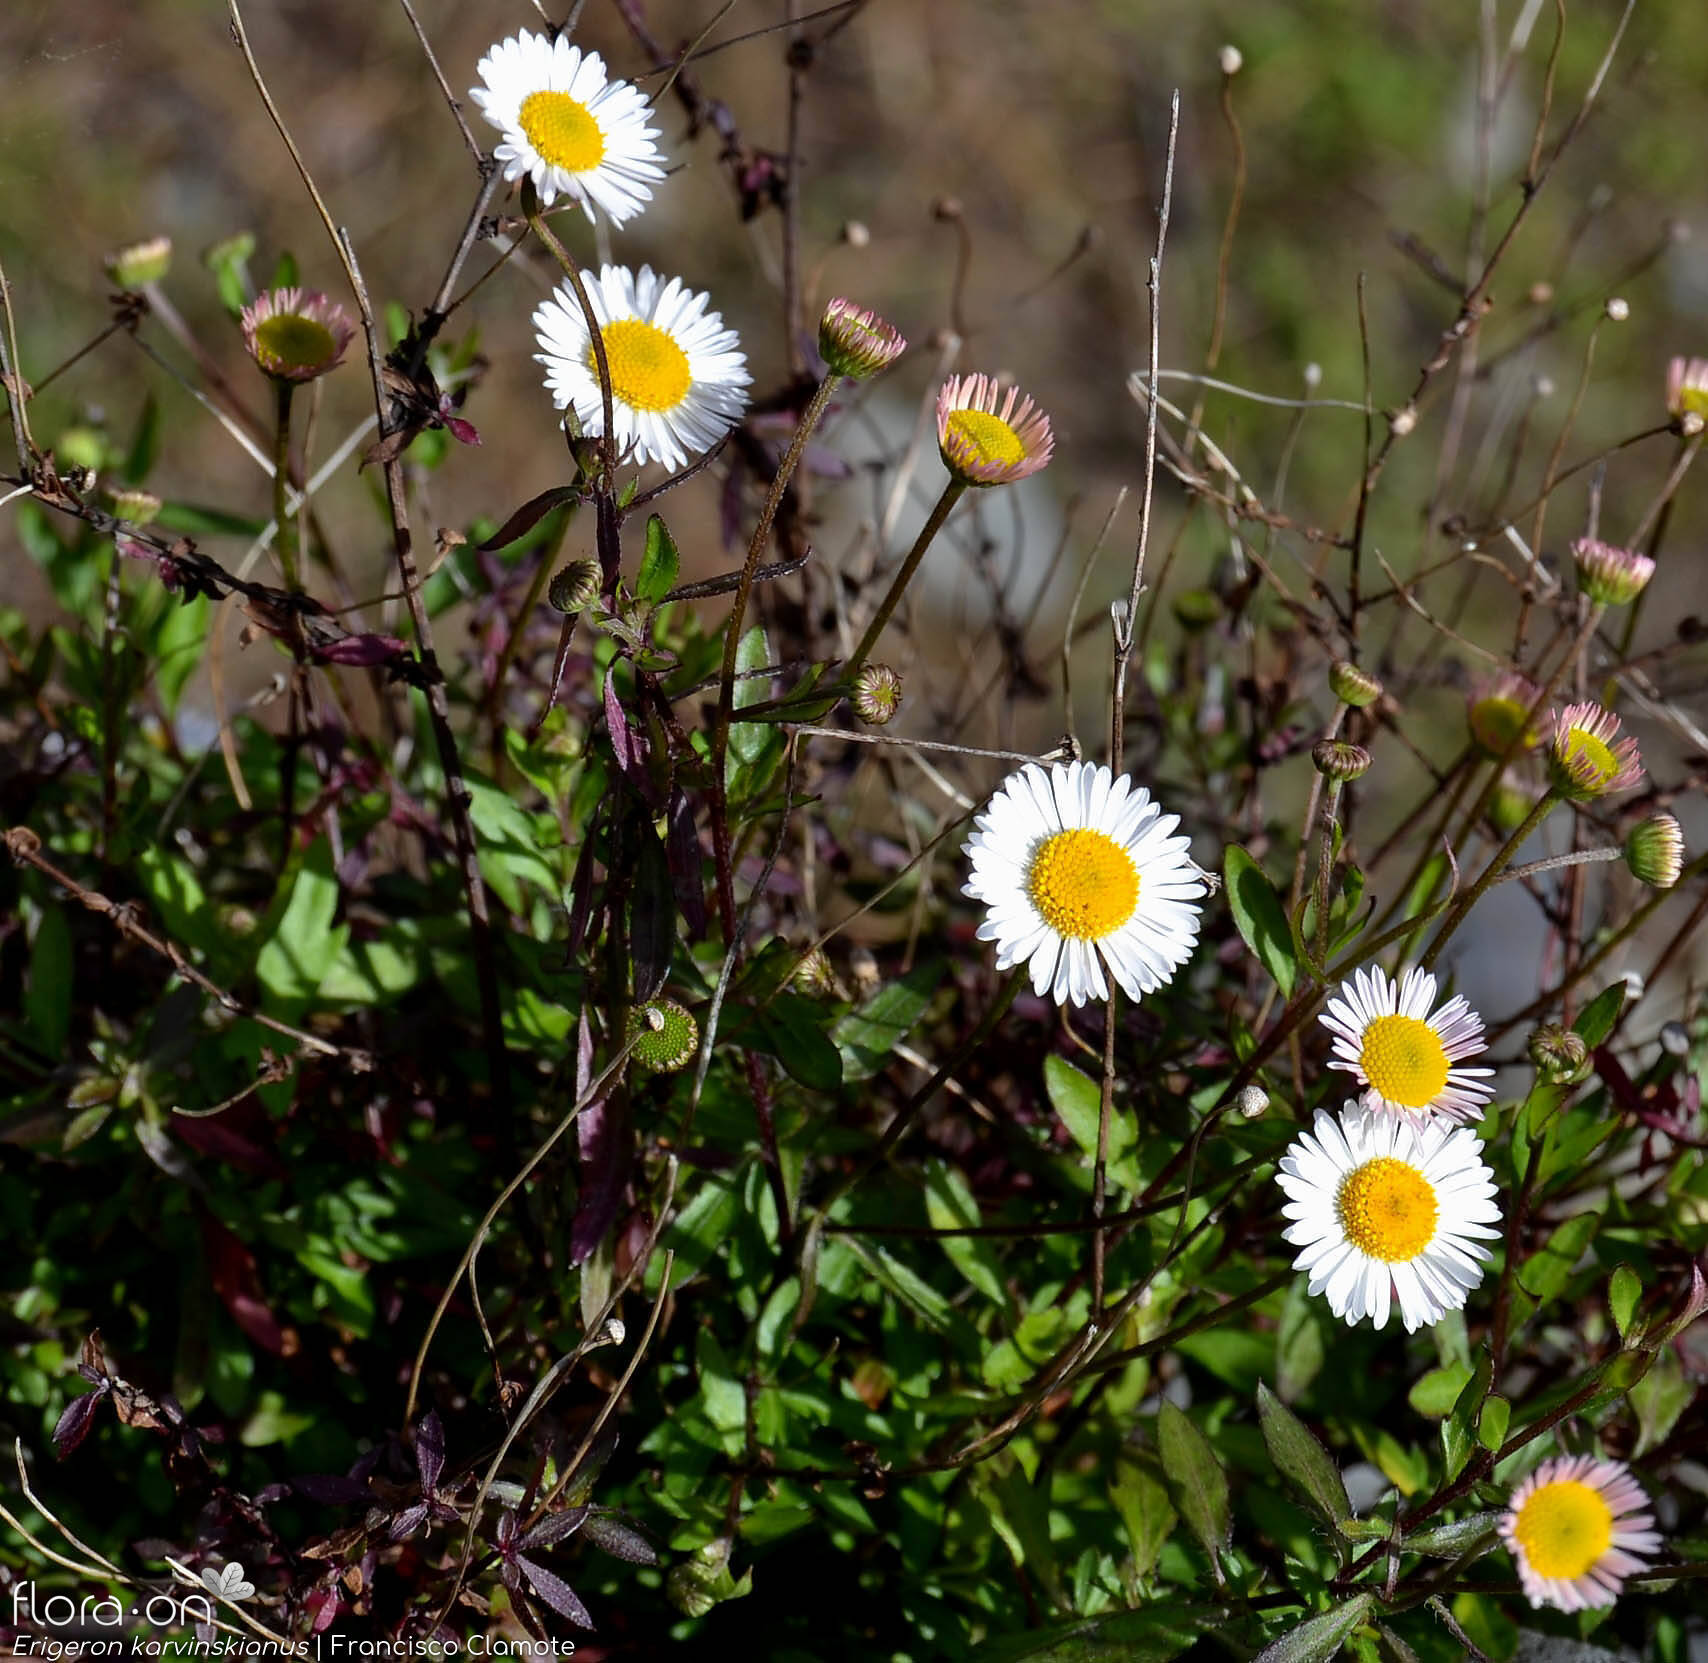 Erigeron karvinskianus - Flor (geral) | Francisco Clamote; CC BY-NC 4.0